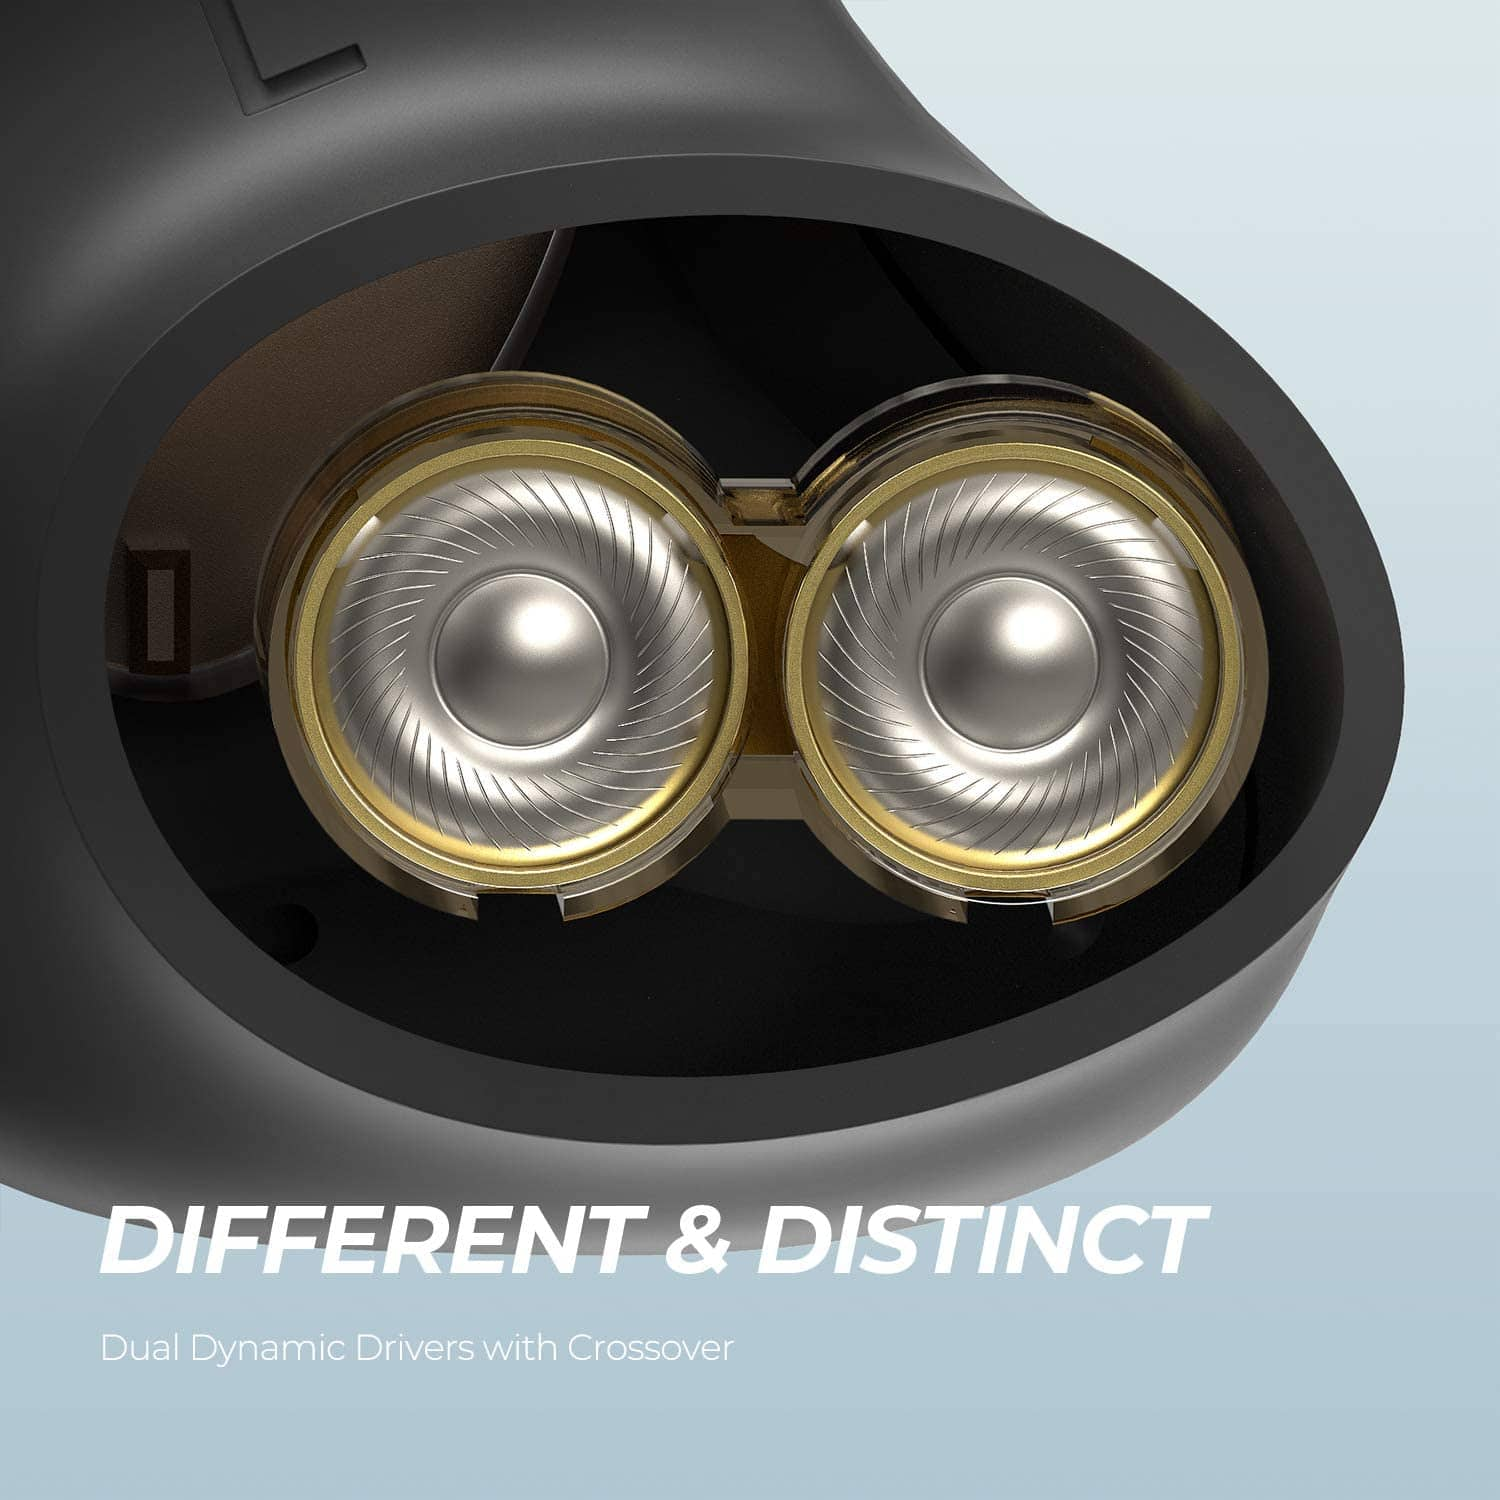 SOUNDPEATS Truengine 3 SE Wireless Earbuds-min-min